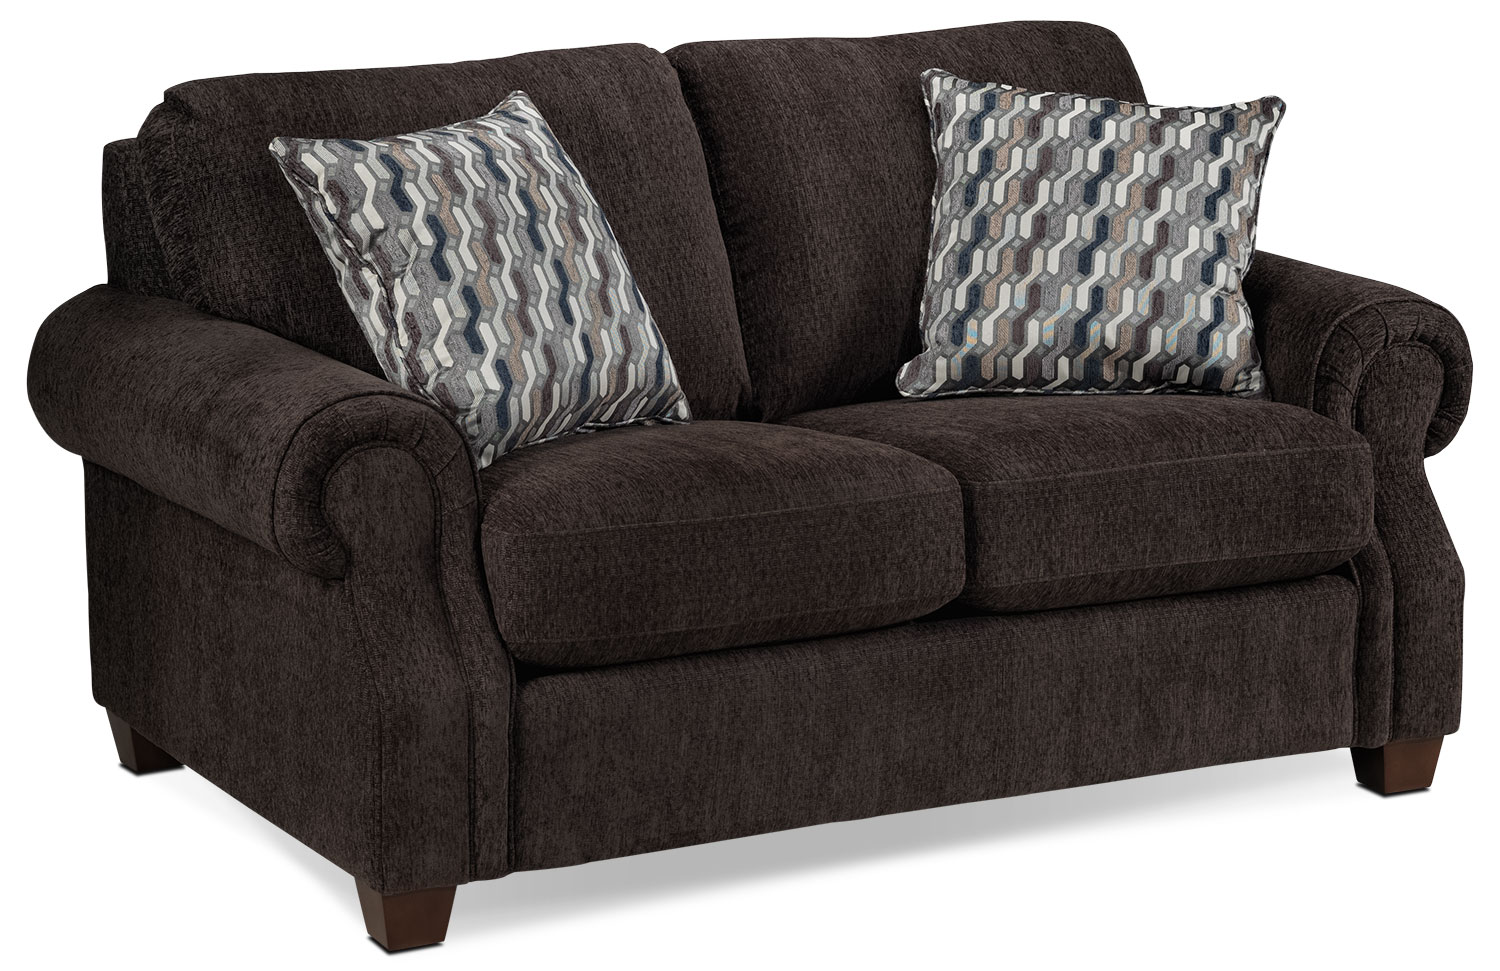 Living Room Furniture - Barbara Loveseat - Espresso